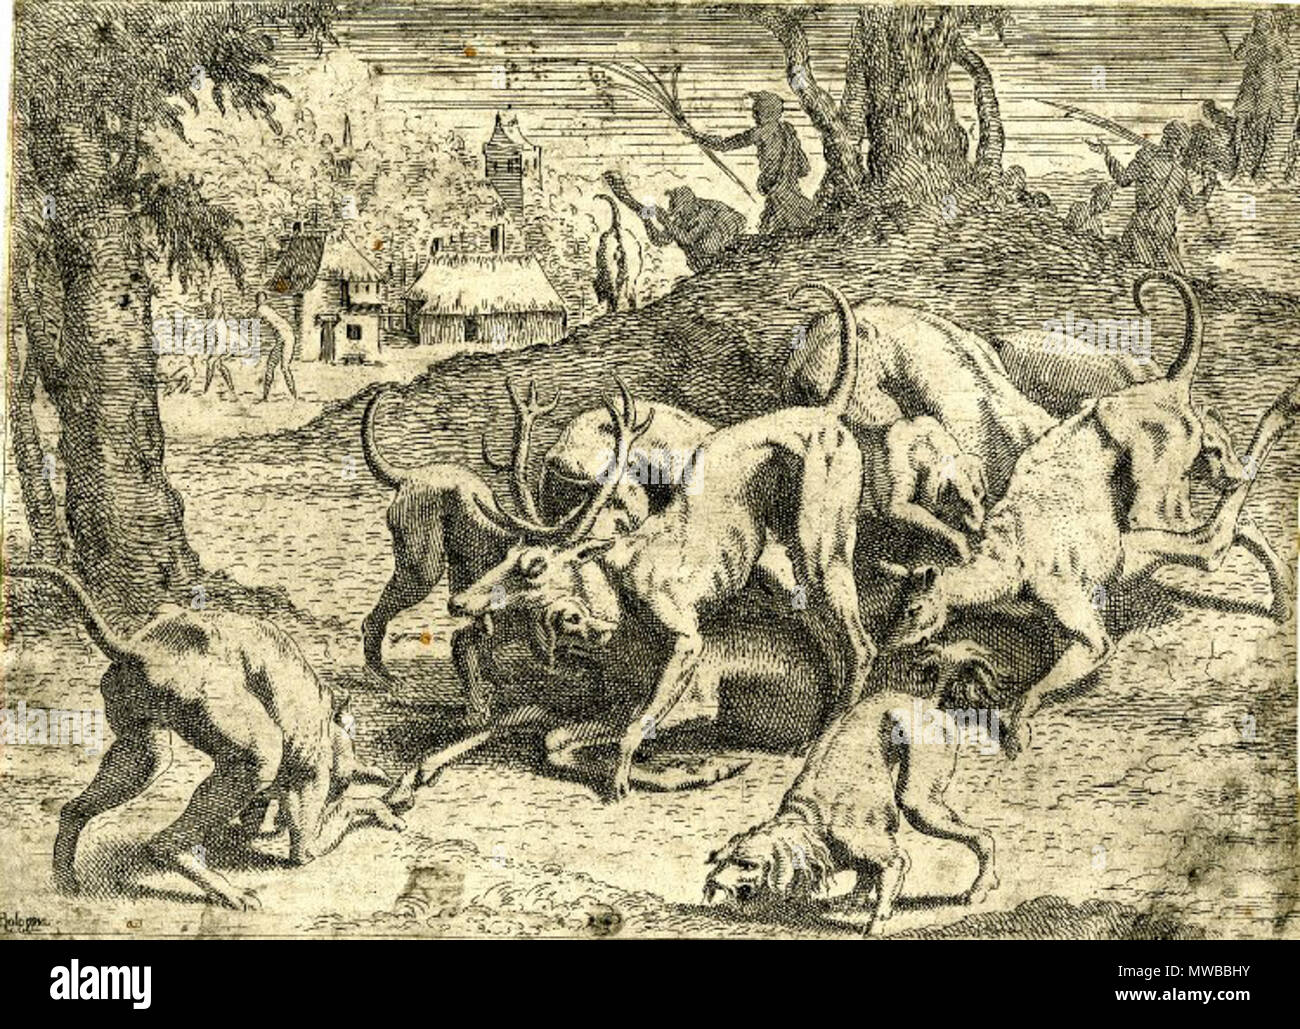 . English: British Museum Pack of hunting dogs attacking a stag, perhaps Actaeon after his metamorphosis; in the background, people in classical costume and houses. c.1545 Etching, Print made by: Léon Davent After: Francesco Primaticcio , 1545 Zerner 1969 LD.38 Bartsch XVI.331.64 . 1540s. Léon Davent - French printmaker in the mid 16th century 154 Davent acteon bm - Stock Image